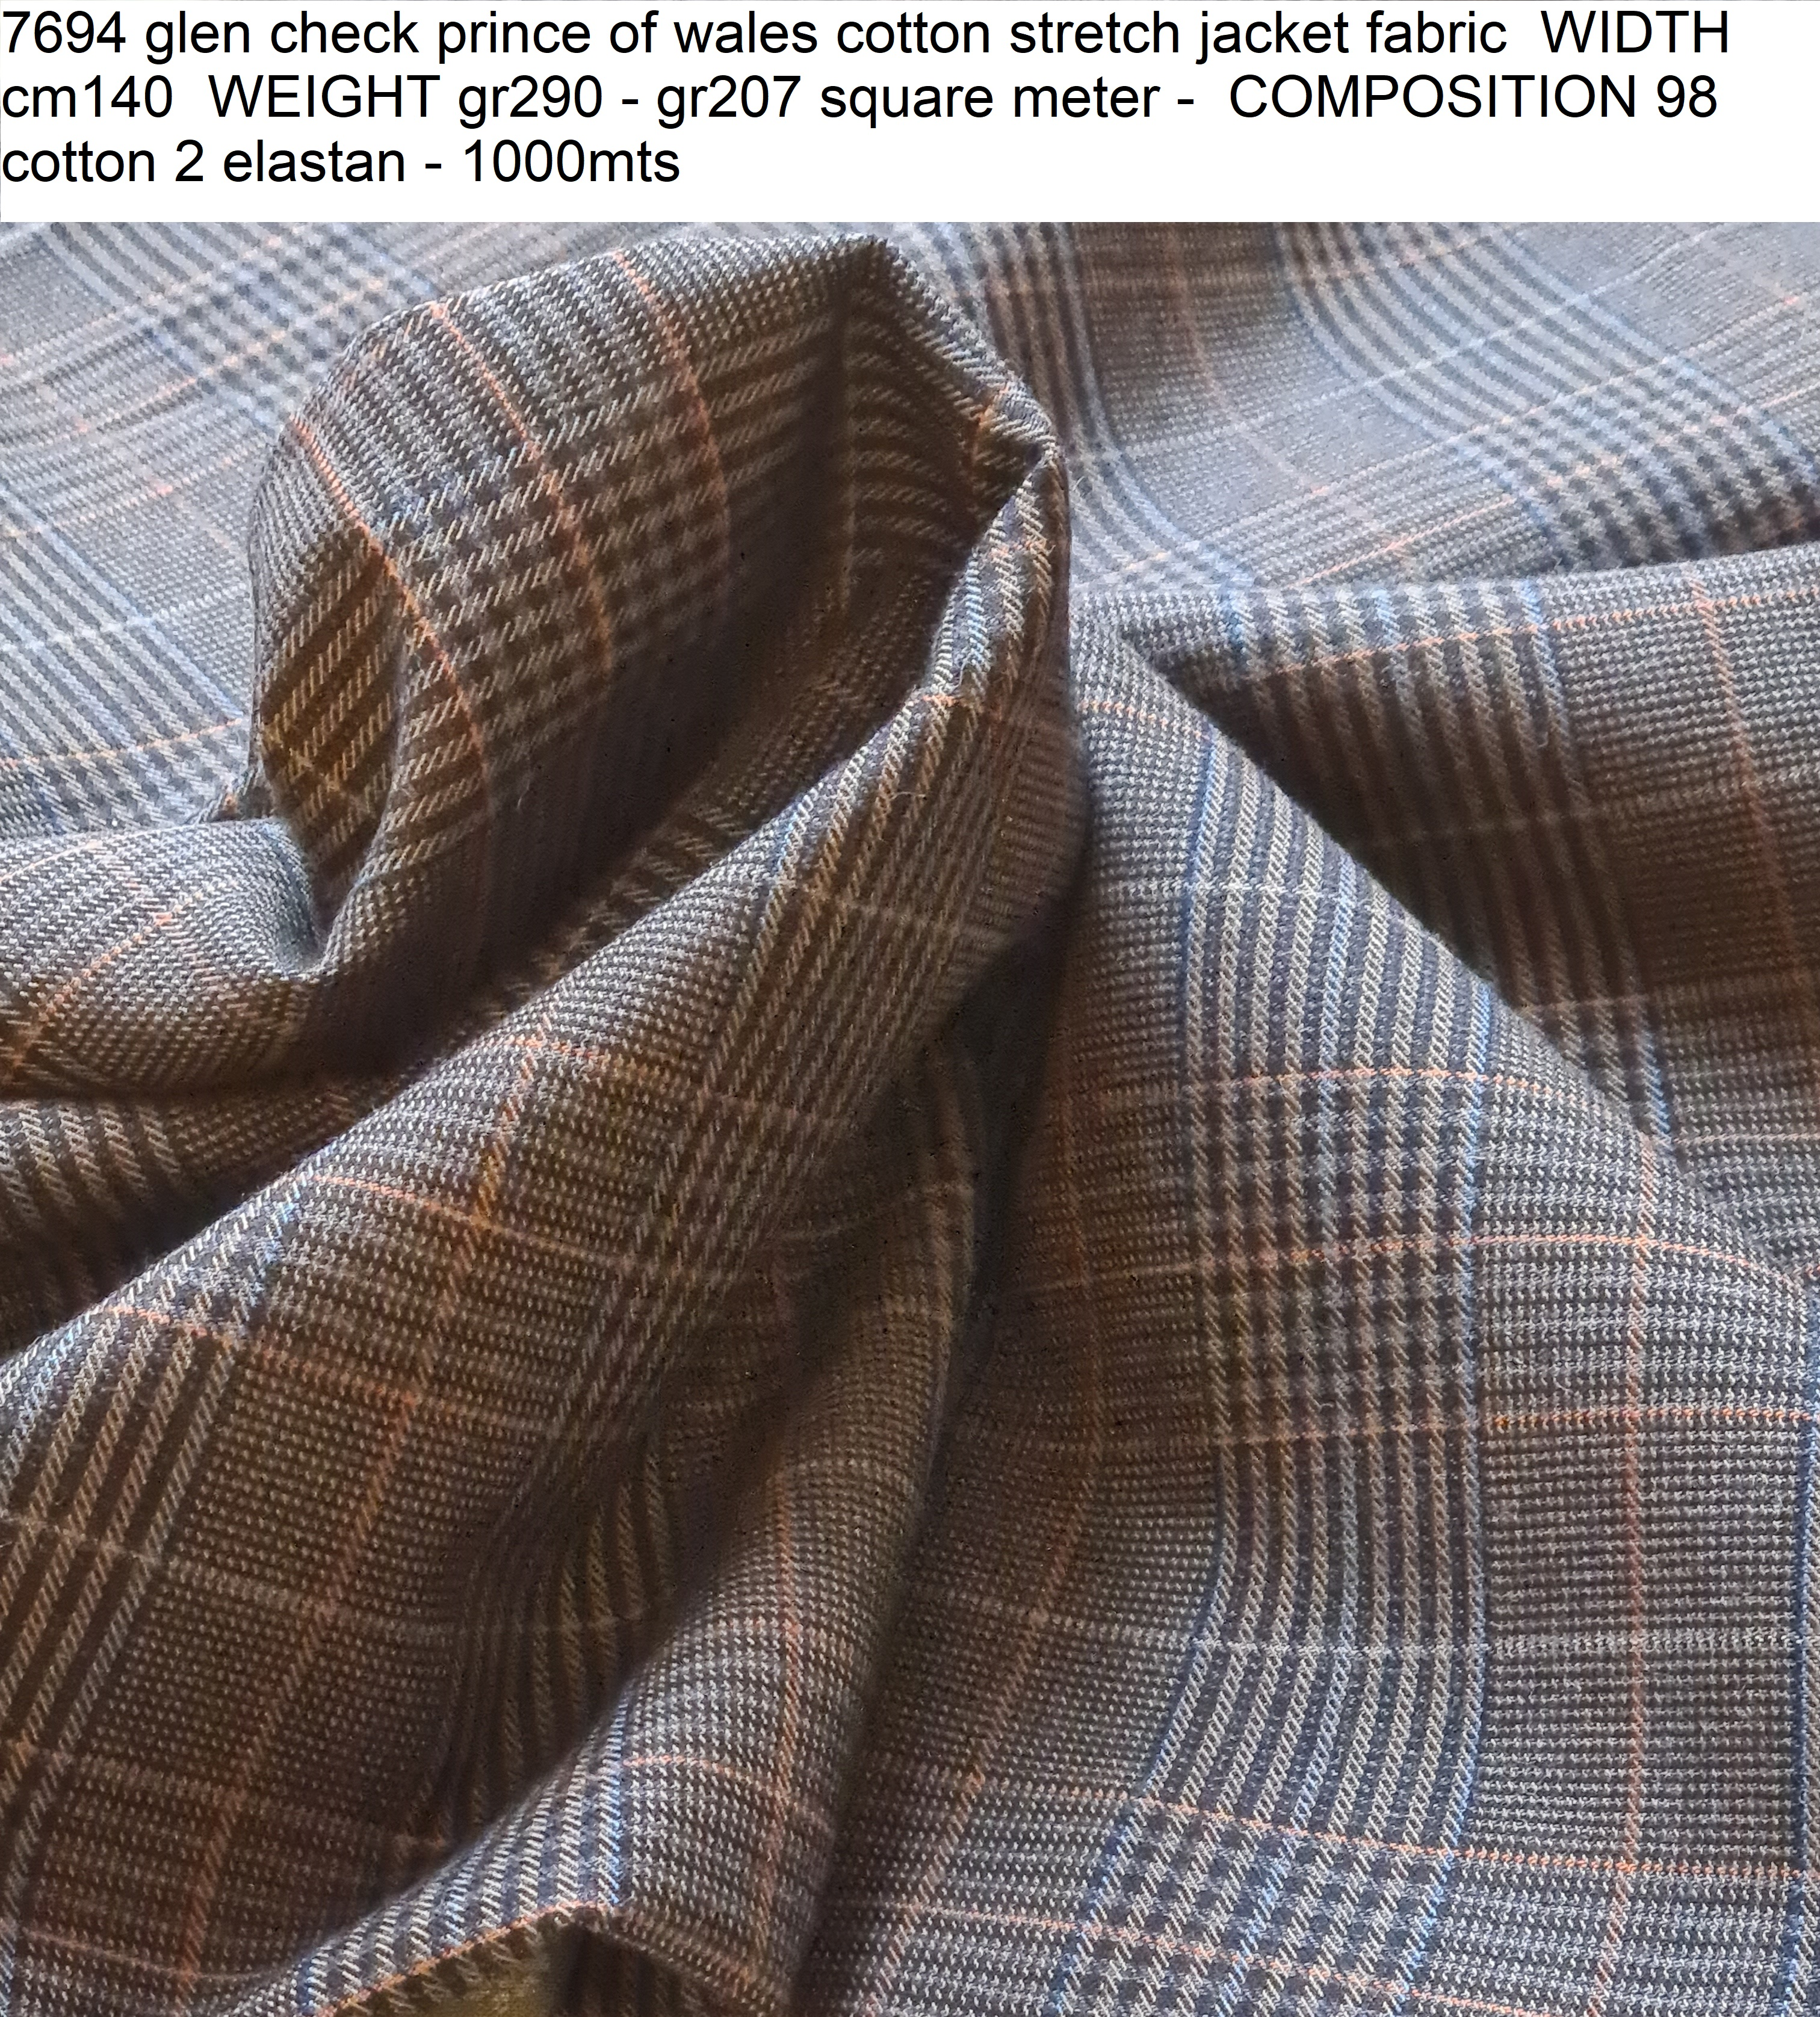 7694 glen check prince of wales cotton stretch jacket fabric WIDTH cm140 WEIGHT gr290 - gr207 square meter - COMPOSITION 98 cotton 2 elastan - 1000mts